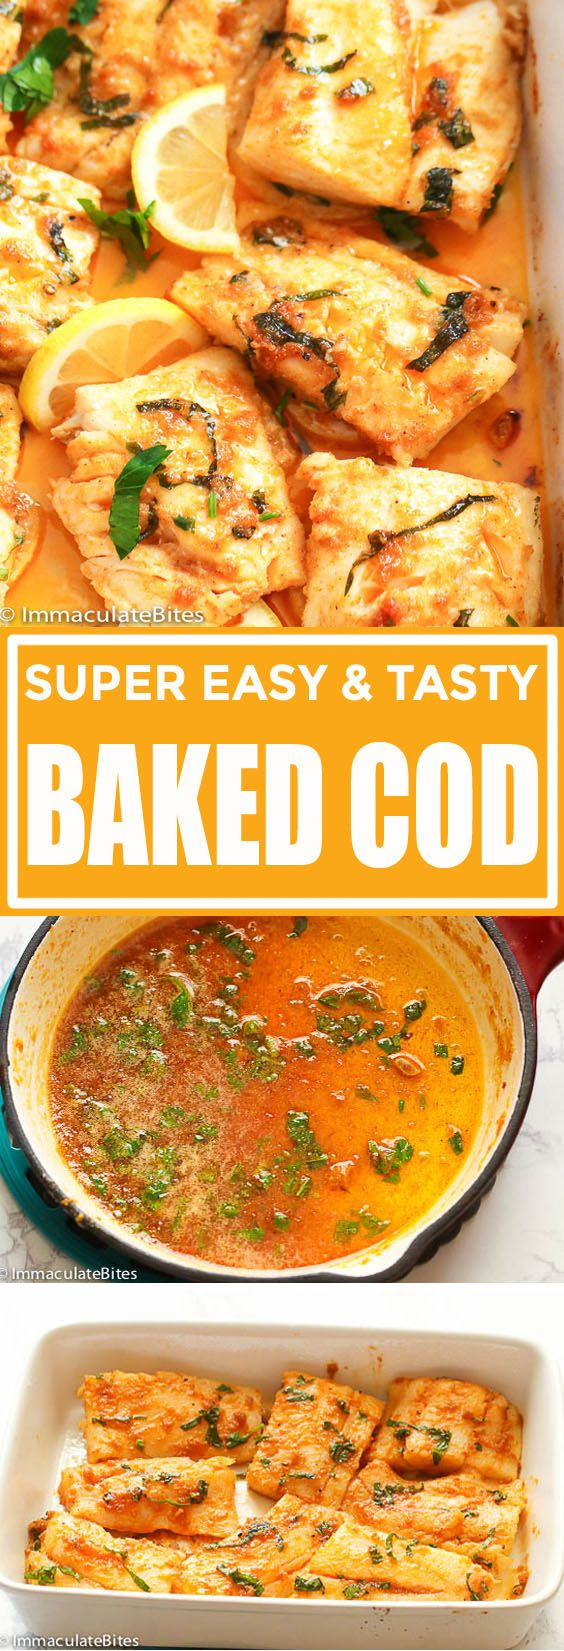 Baked Cod images